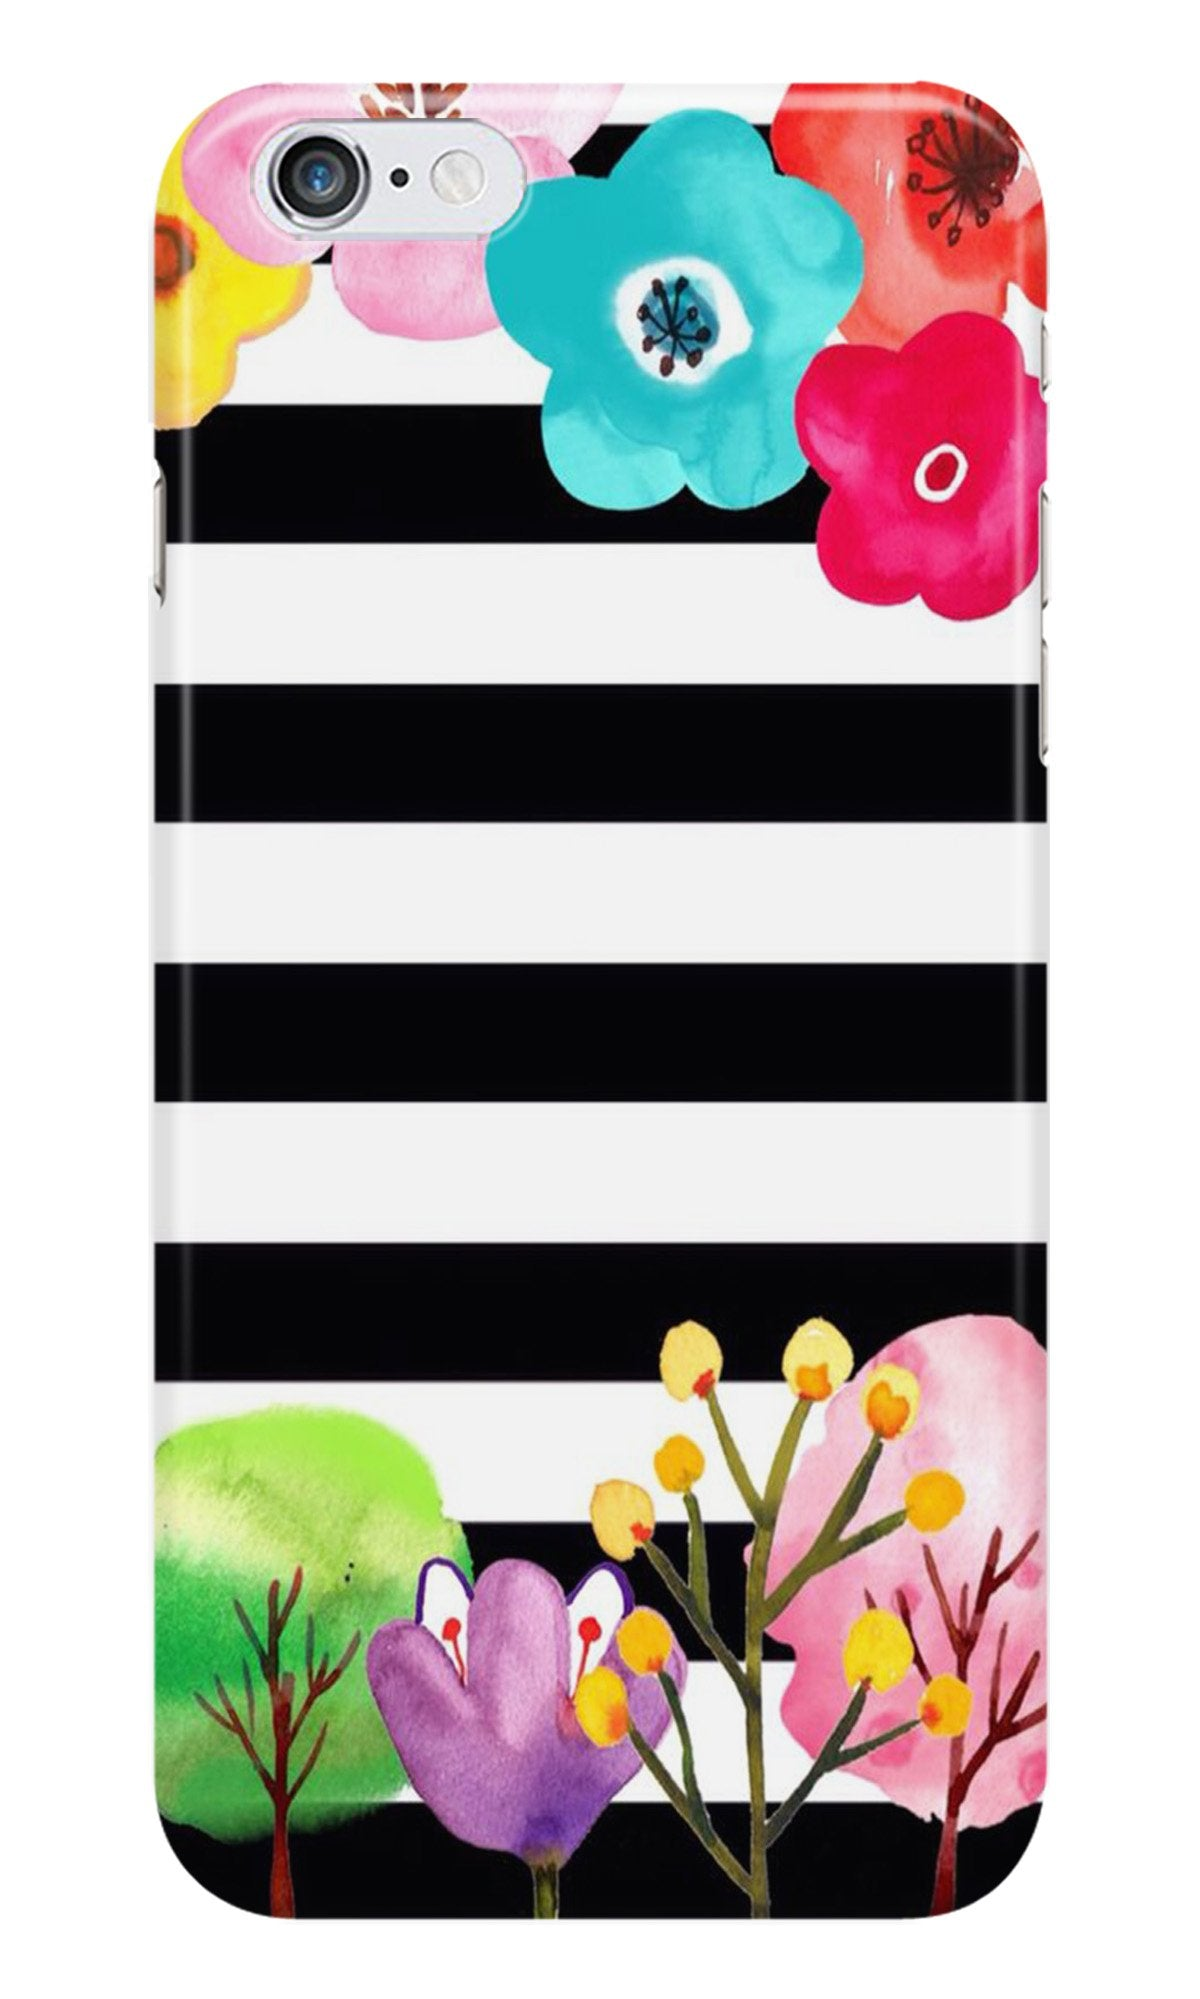 Designer Case for Iphone 6/6S (Design No. 300)